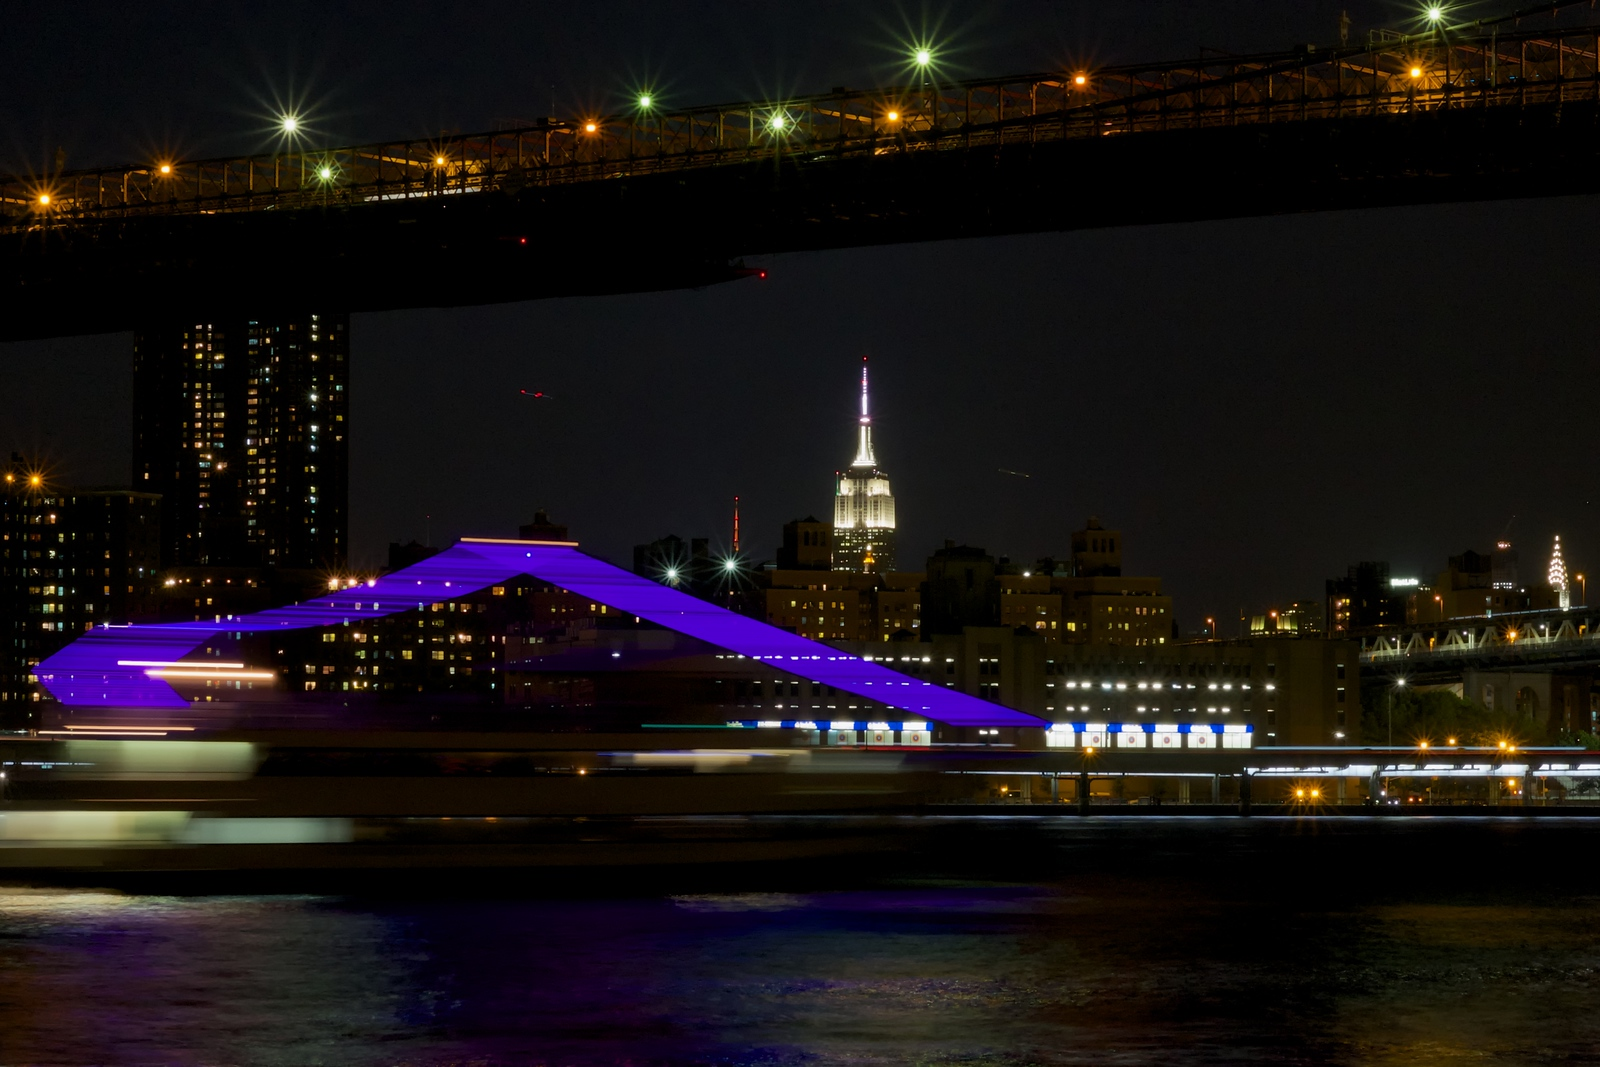 Party Boat, Empire State, Night